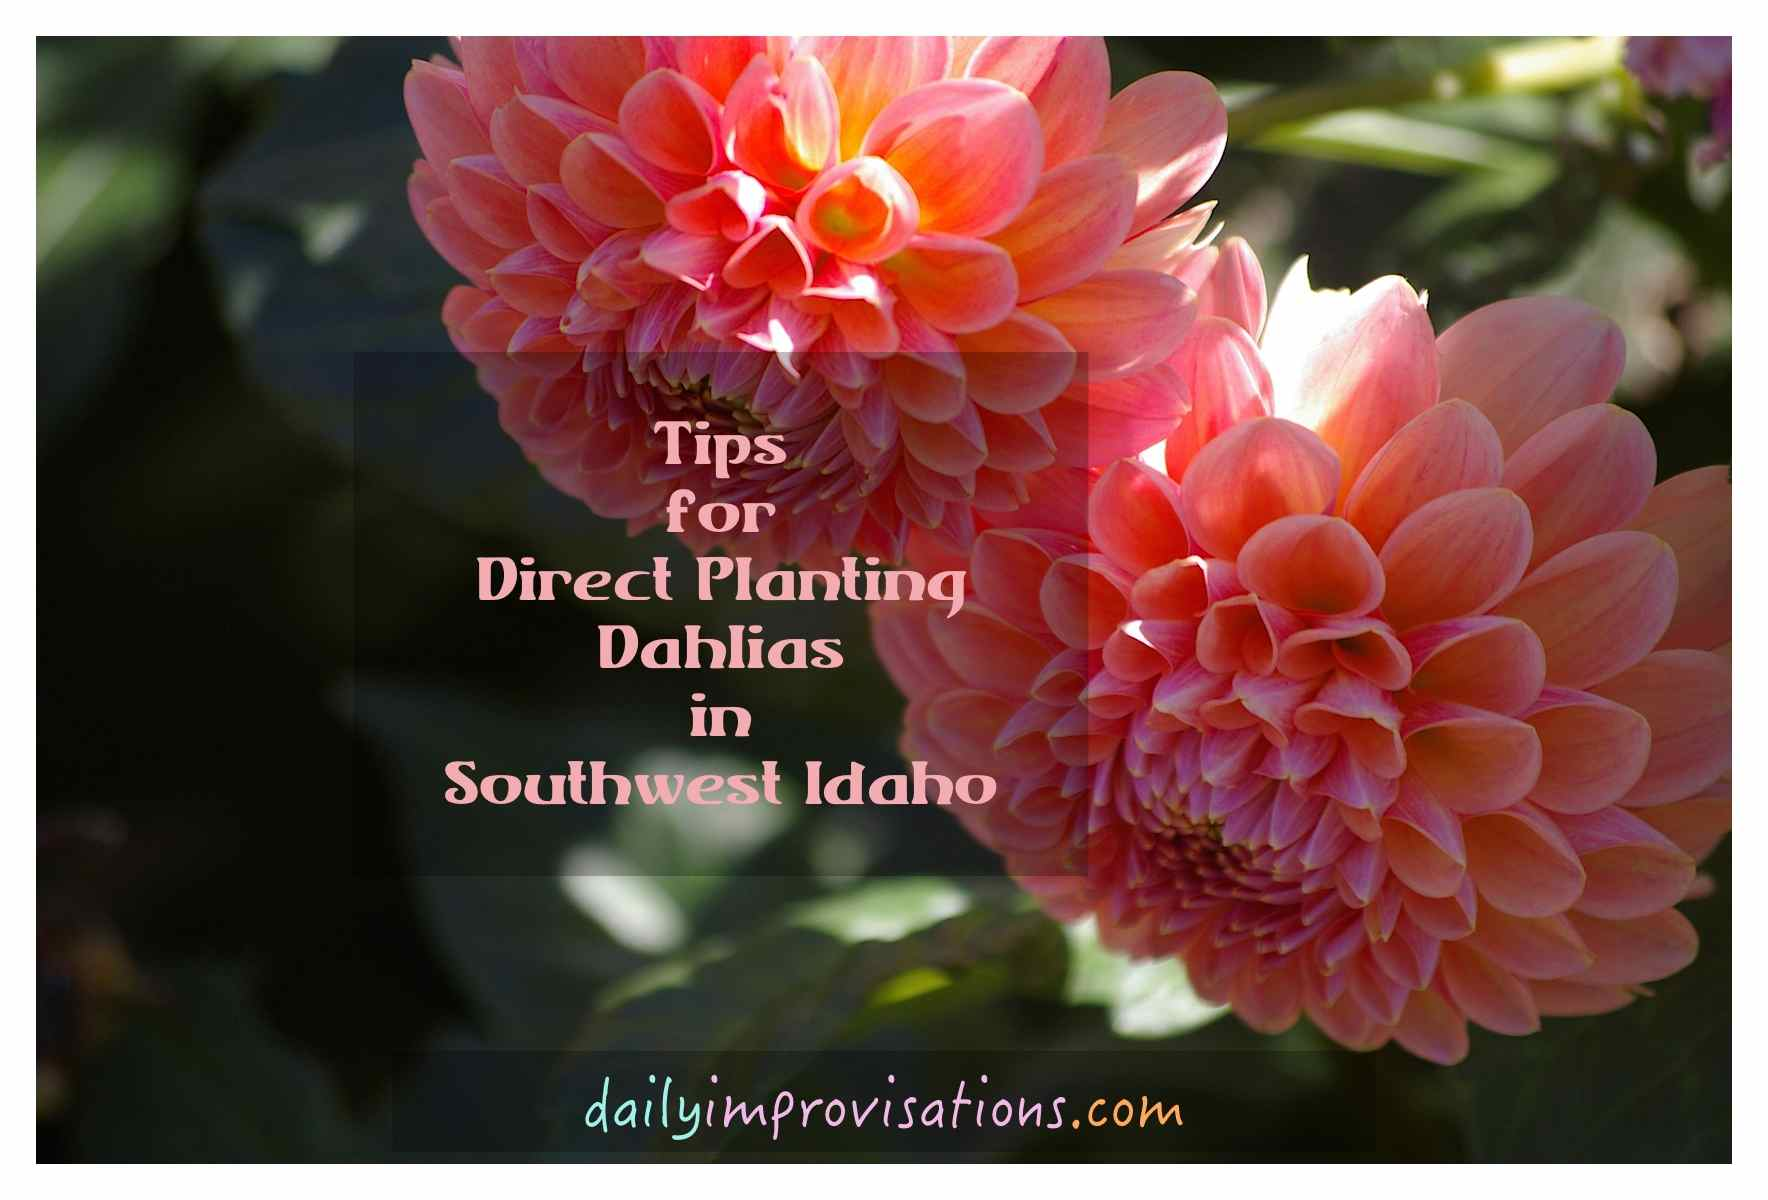 Tips For Direct Planting Dahlias In Southwest Idaho